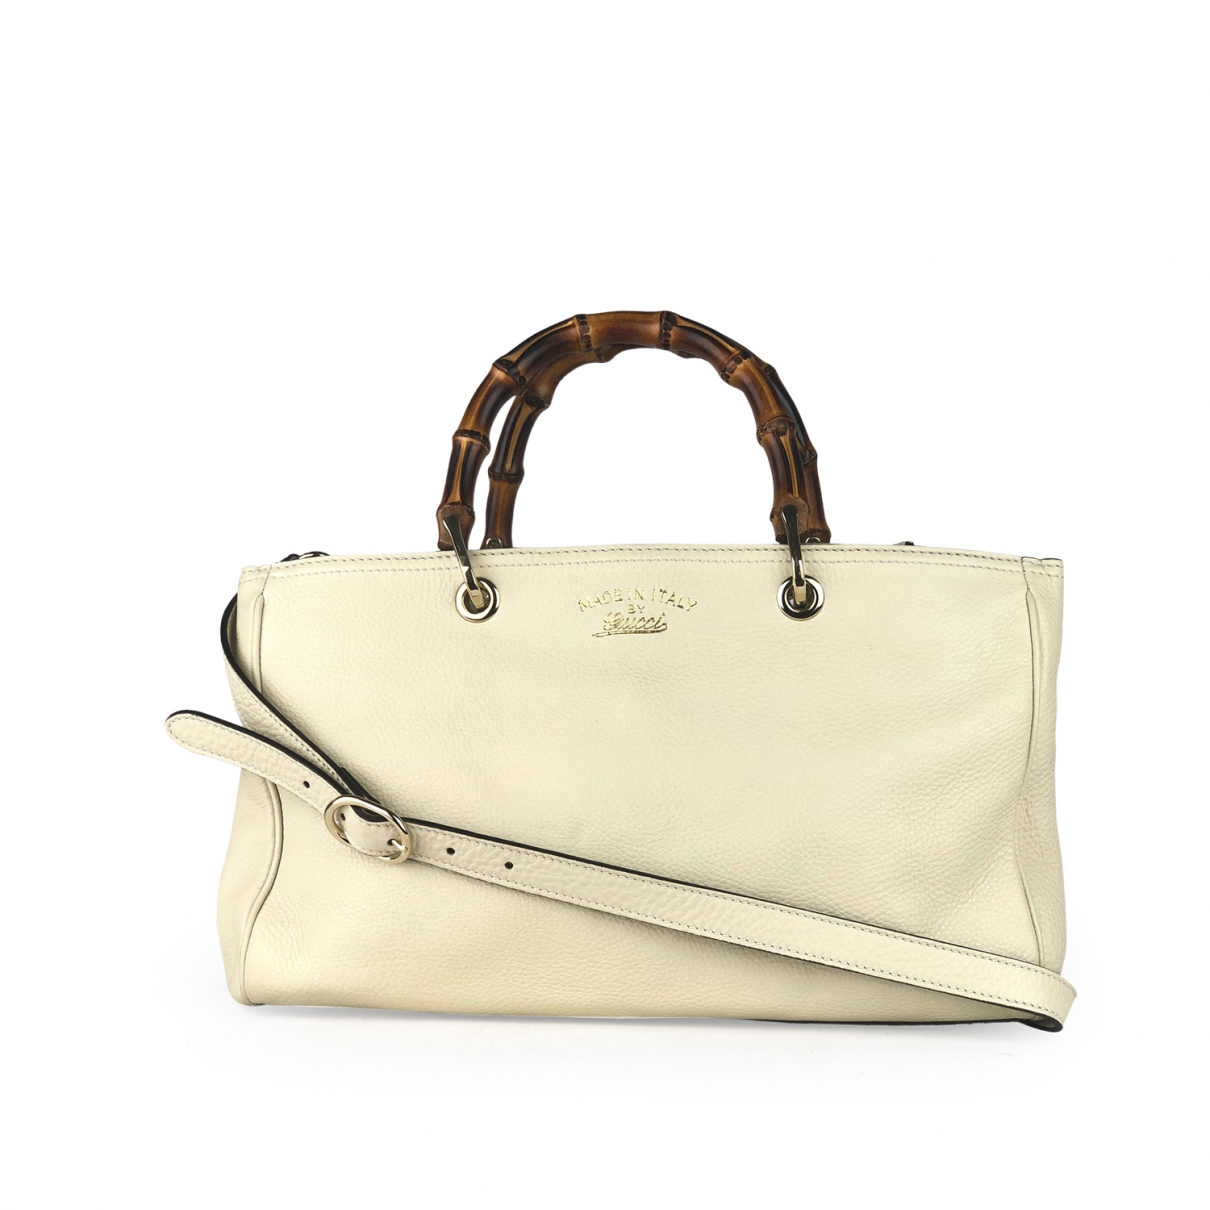 Gucci Bamboo White Leather handbag for Women \N